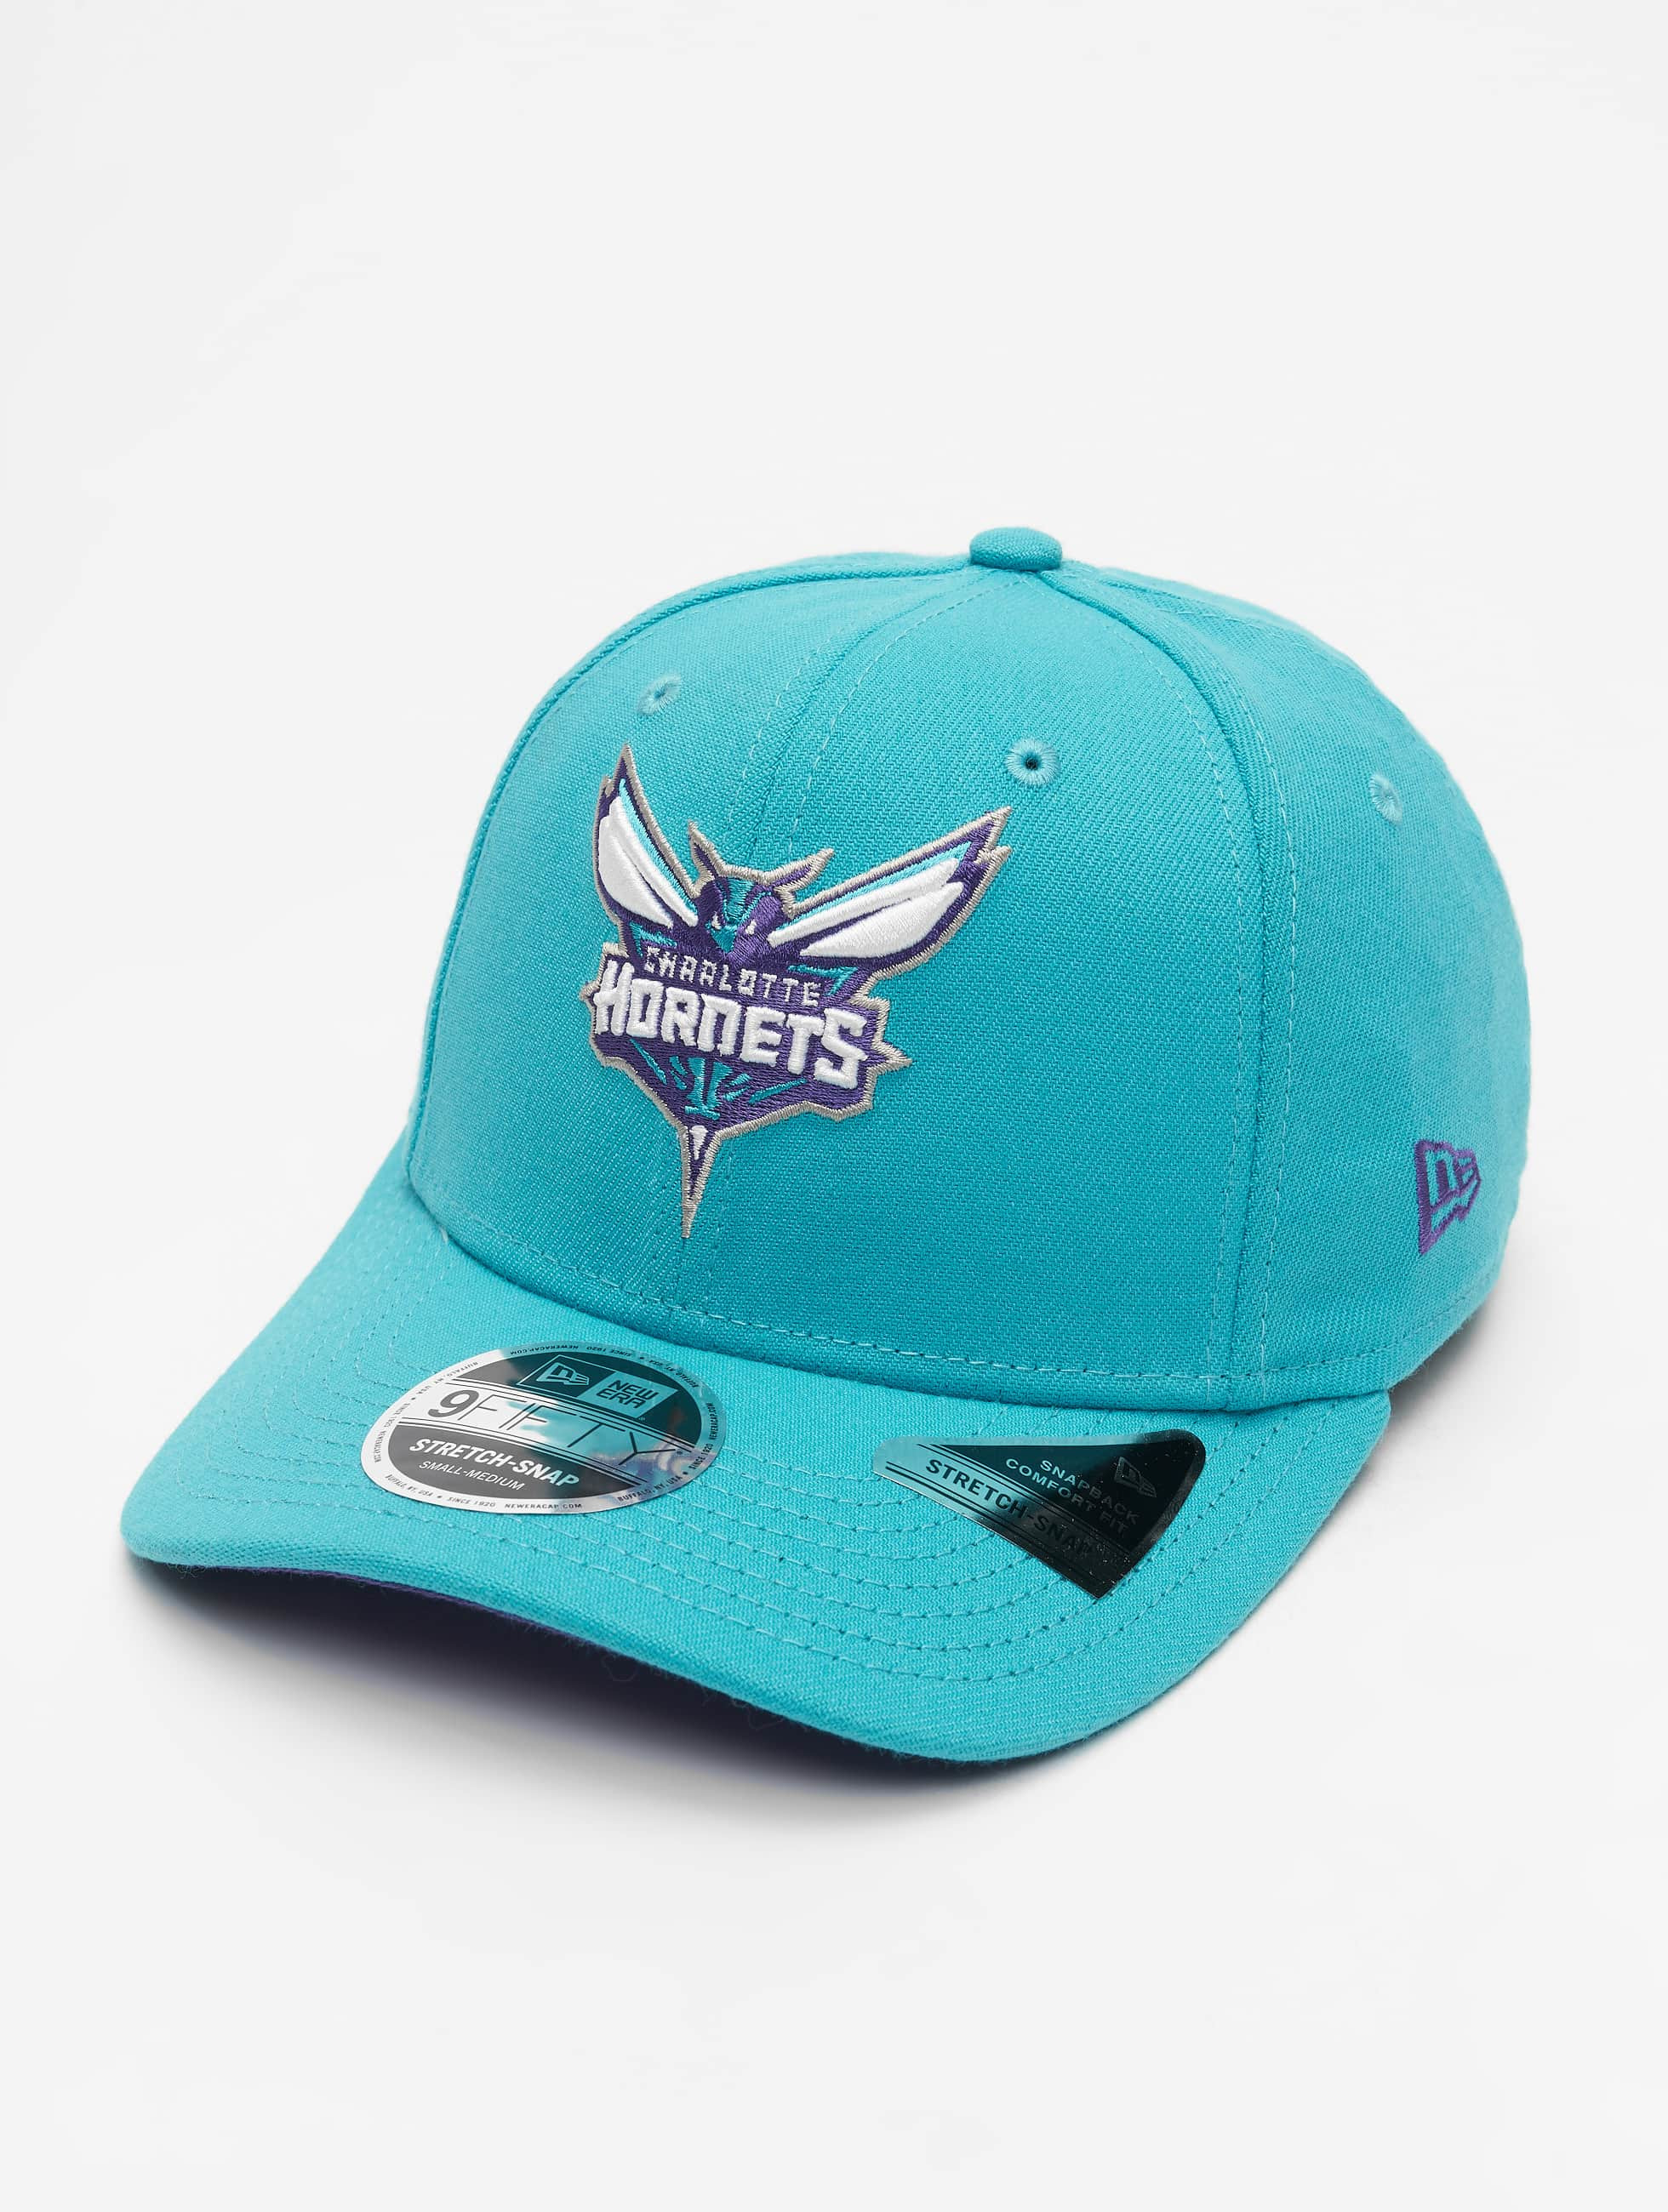 New Era NBA Charlotte Hornets Team Stretch 9Fifty Snapback Cap Turquoise